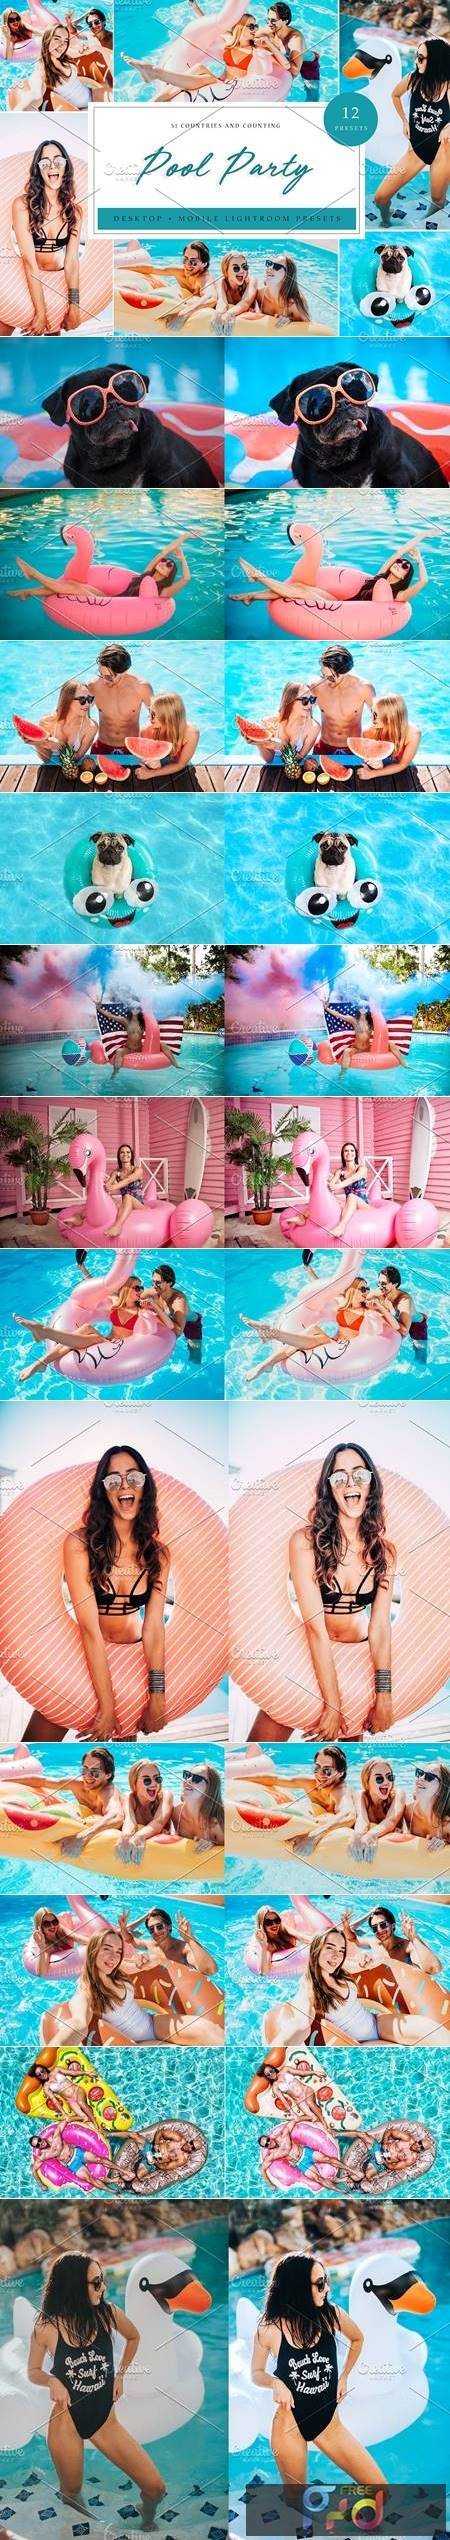 Lightroom Presets - Pool Party Theme 5039572 1